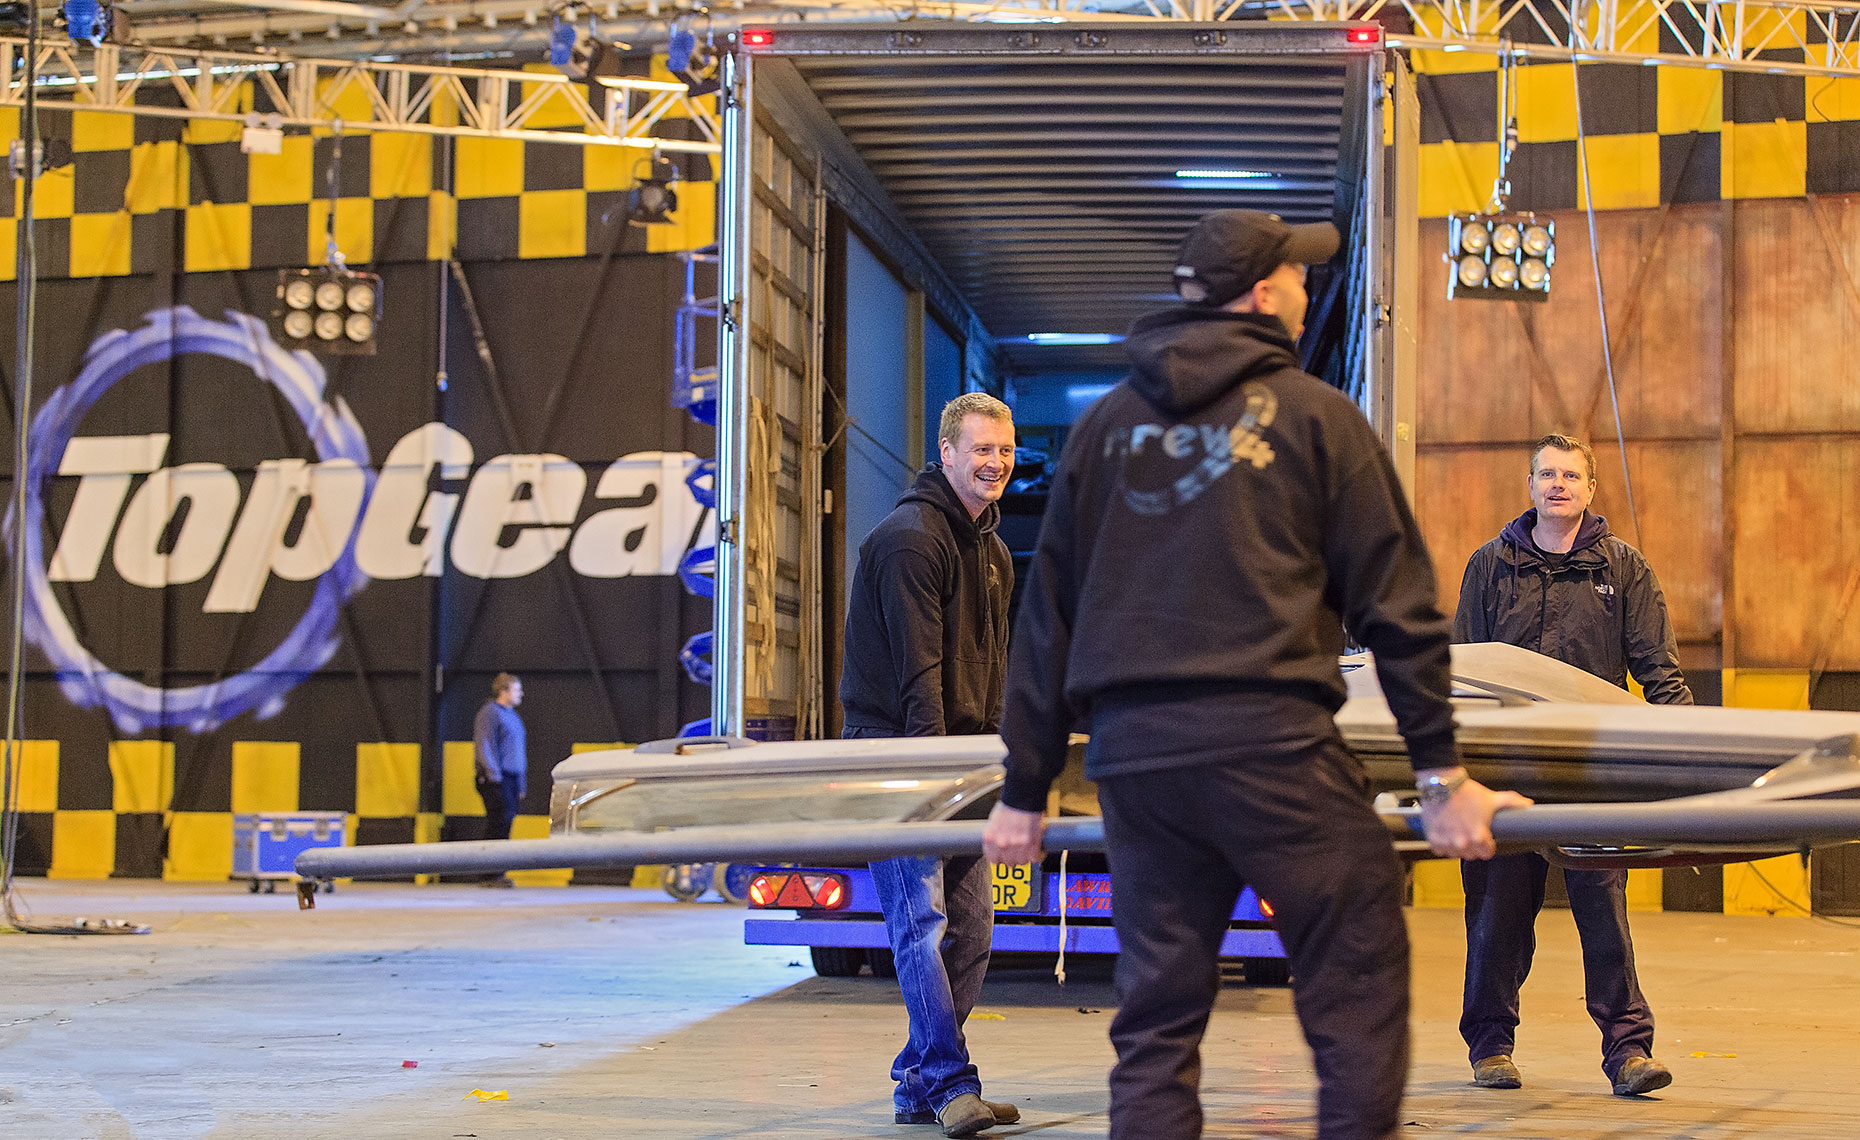 Production crew members carrying equipment onto BBC set for television show Top Gear